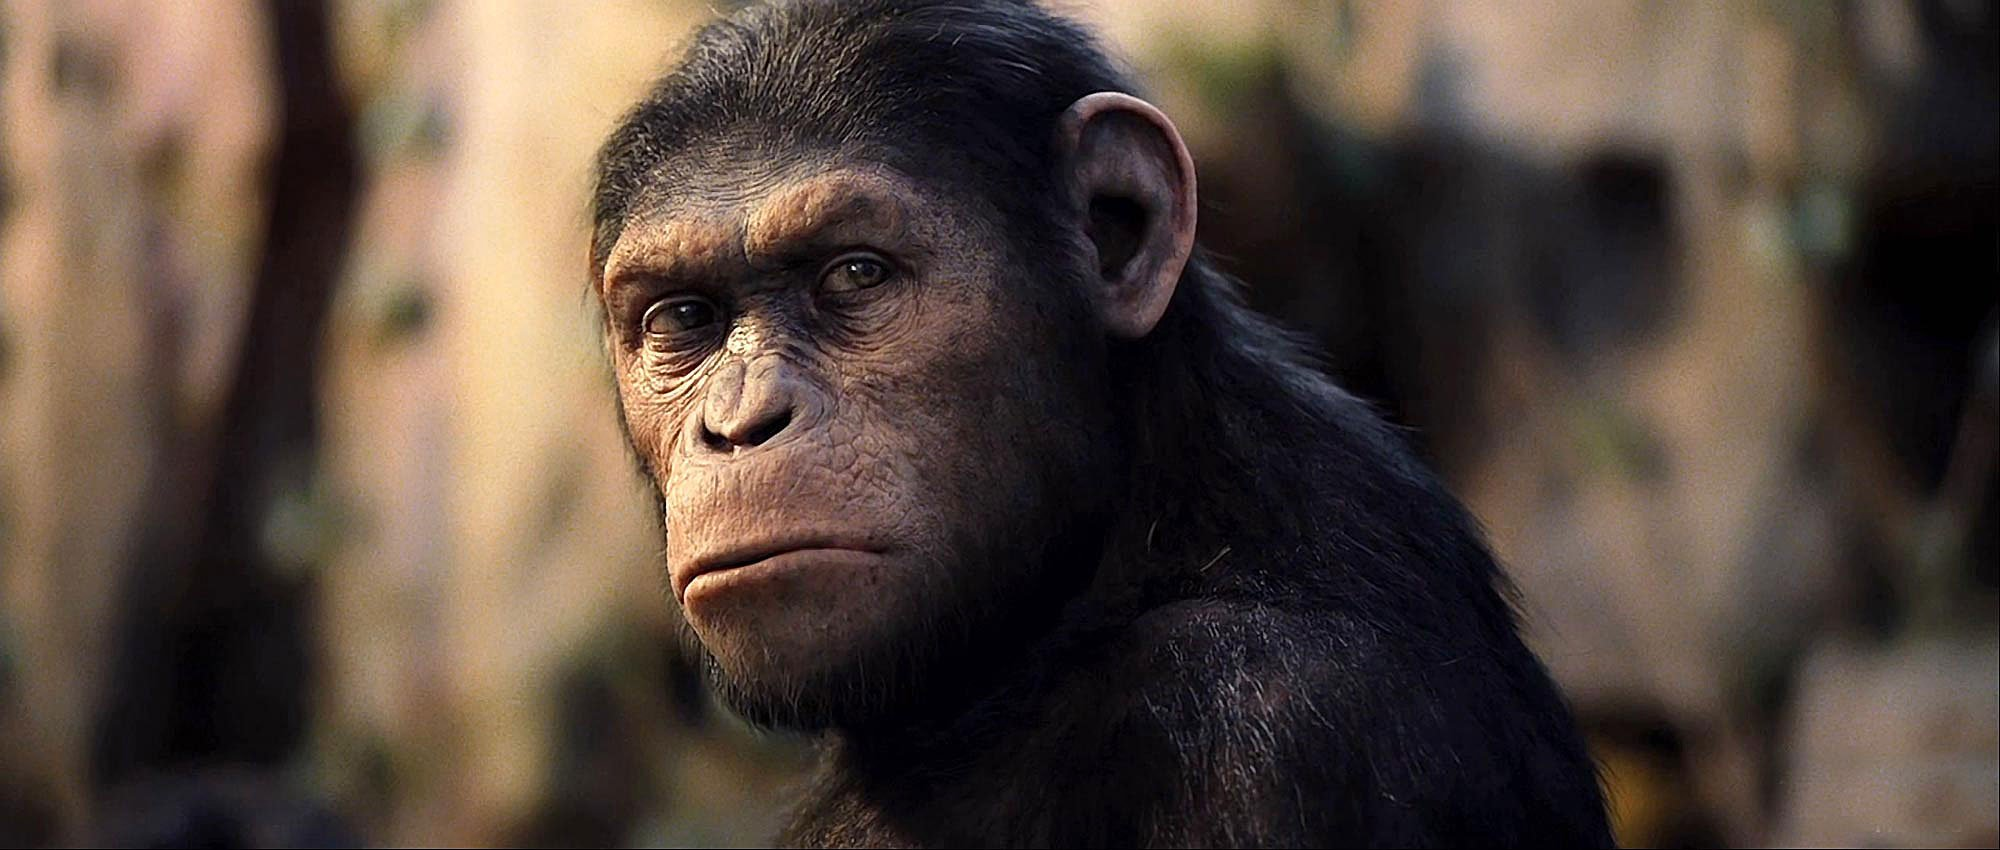 Rise_of_the_Planet_of_the_Apes-18